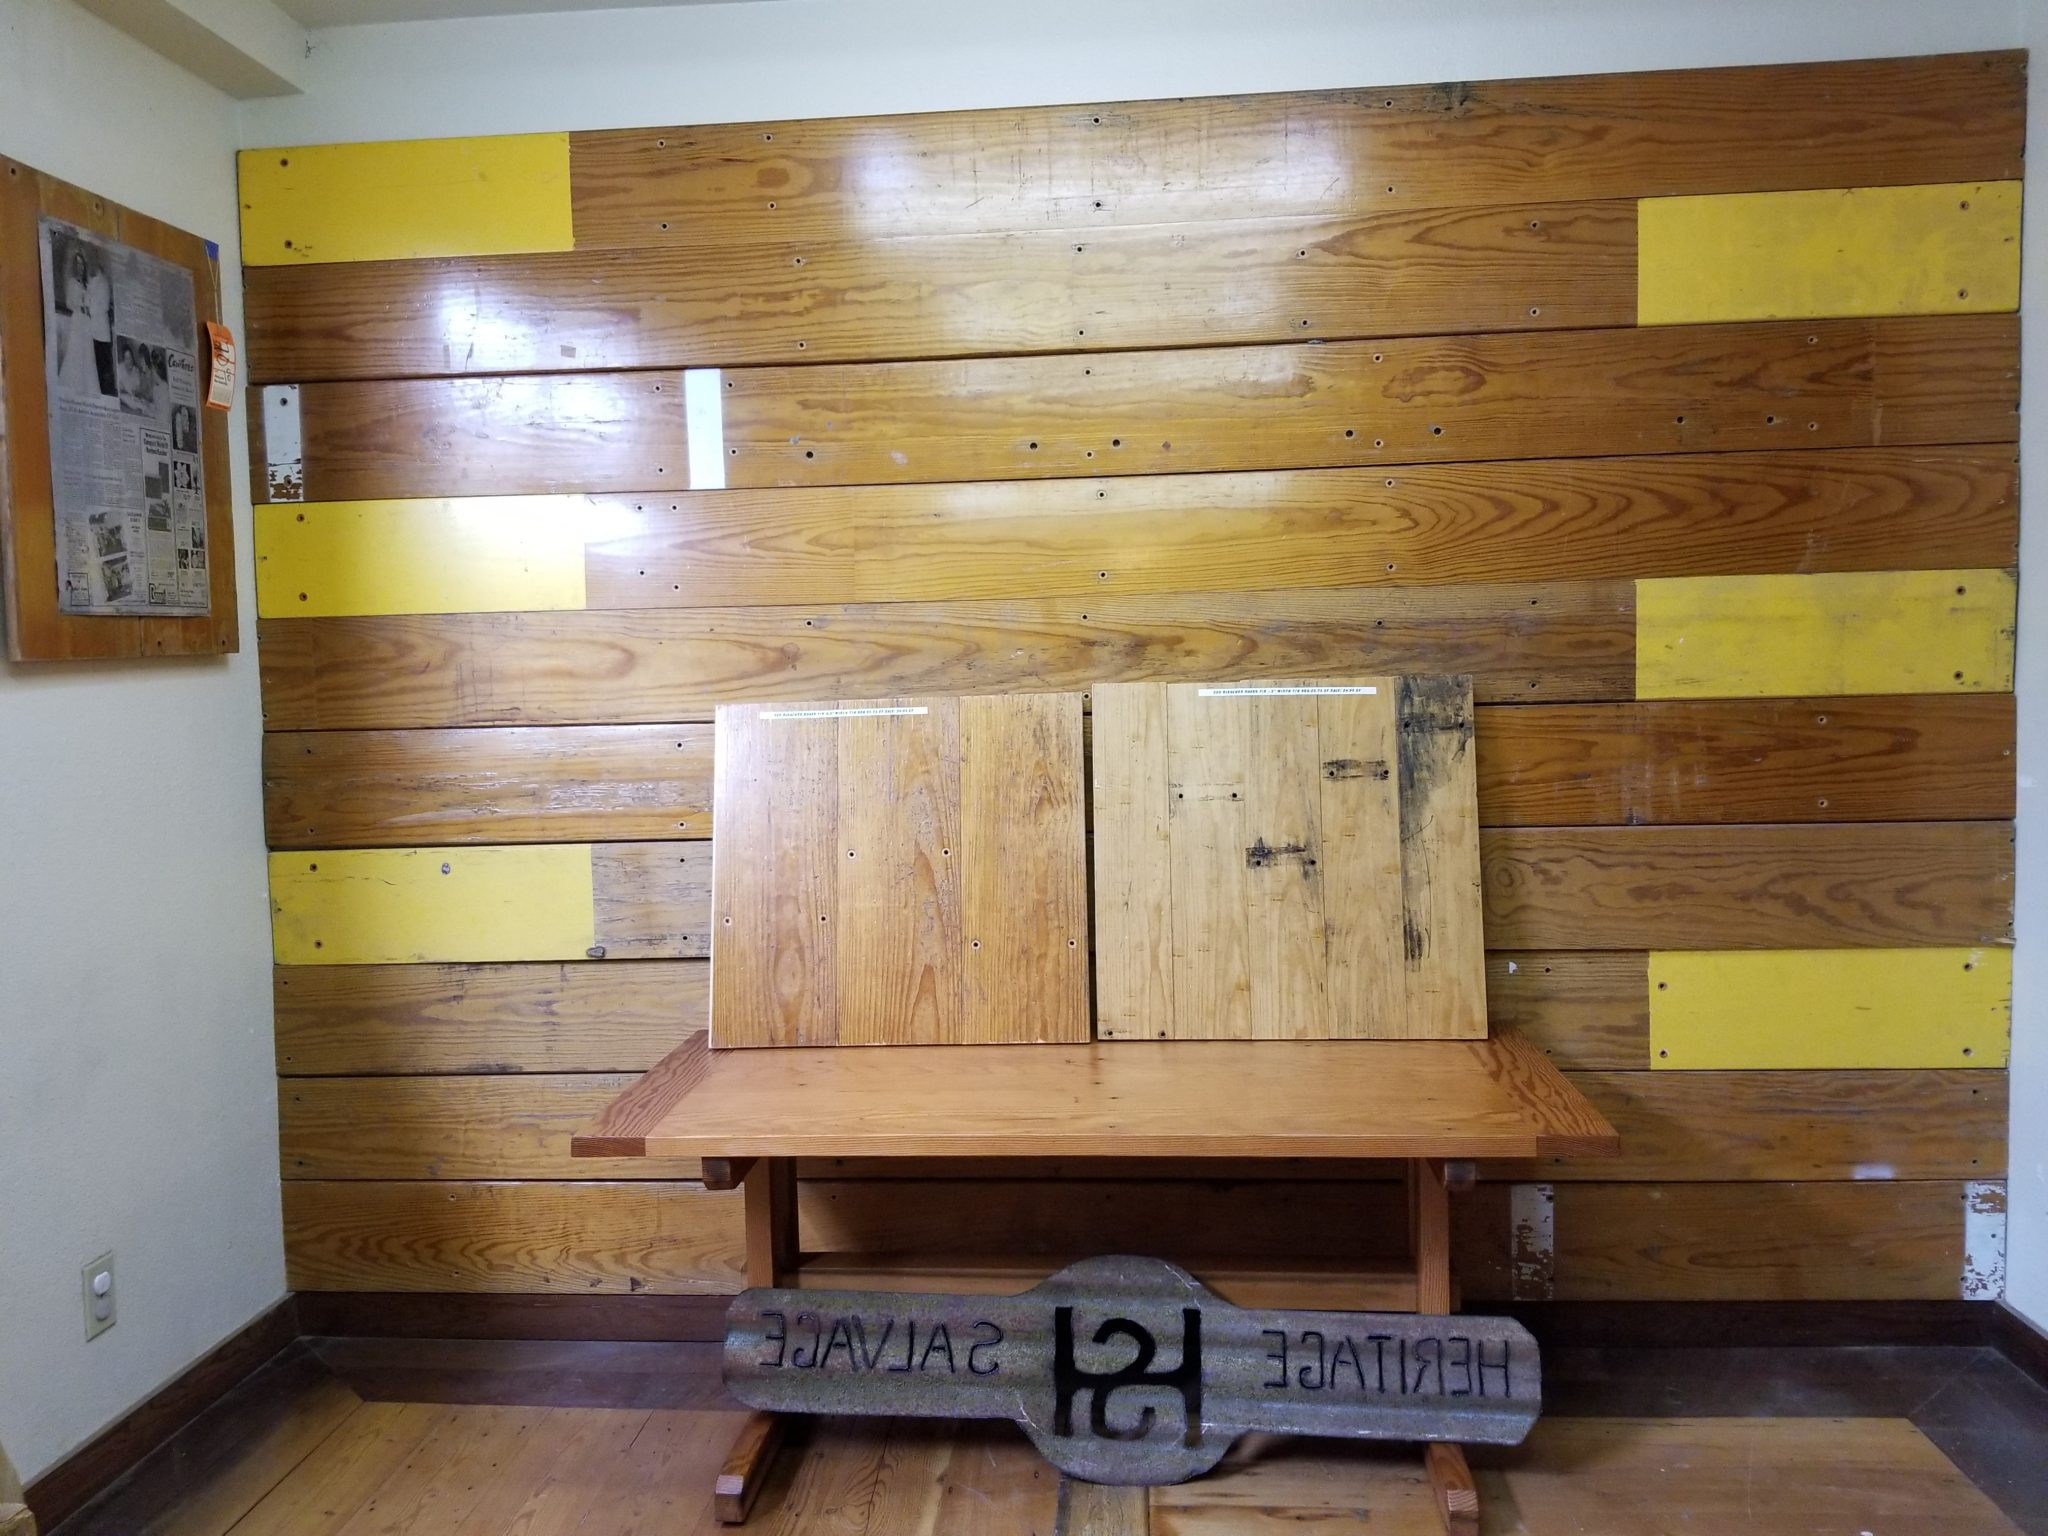 hardwood floor refinishing sacramento of heritage salvage heritage salvage throughout starting at 4 50 per board foot most are 3 4″x9″ and run 2 50 linear foot 3 4″ thickness widths ranging from 5″ 12″ lengths up to 20′ pine bleache